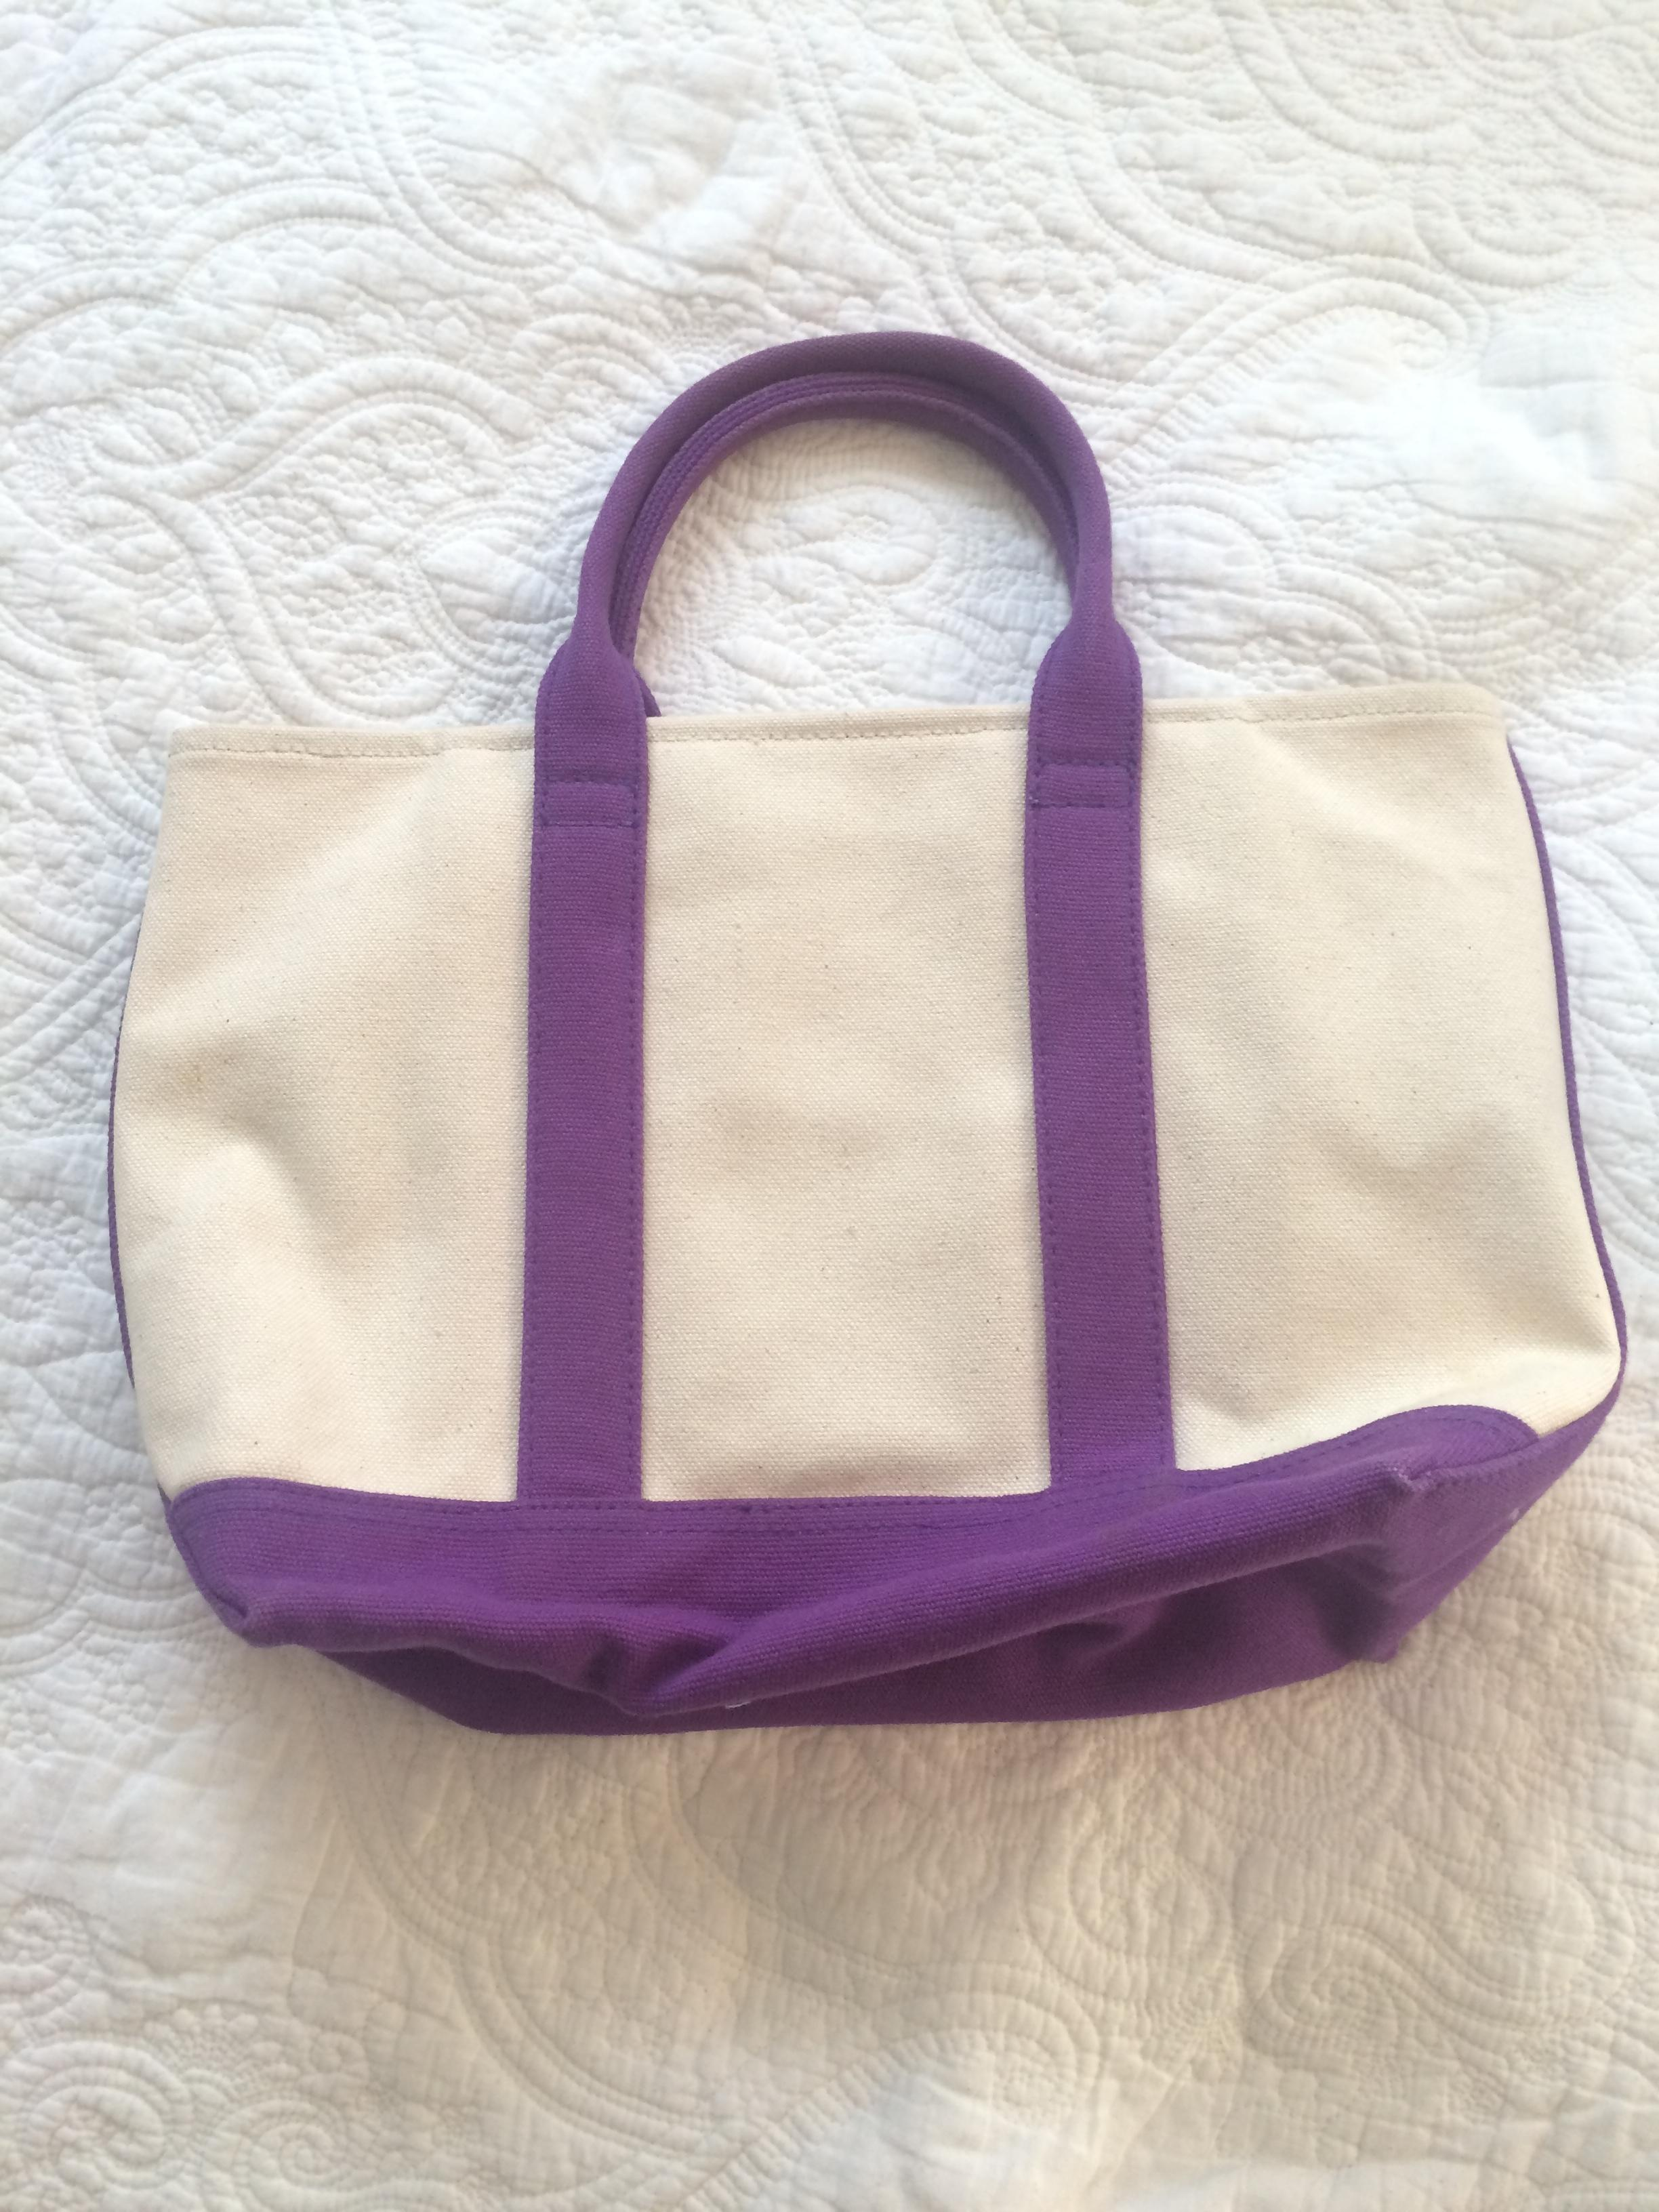 Polo Ralph Lauren Purple Beach Bag | Beach Bags on Sale